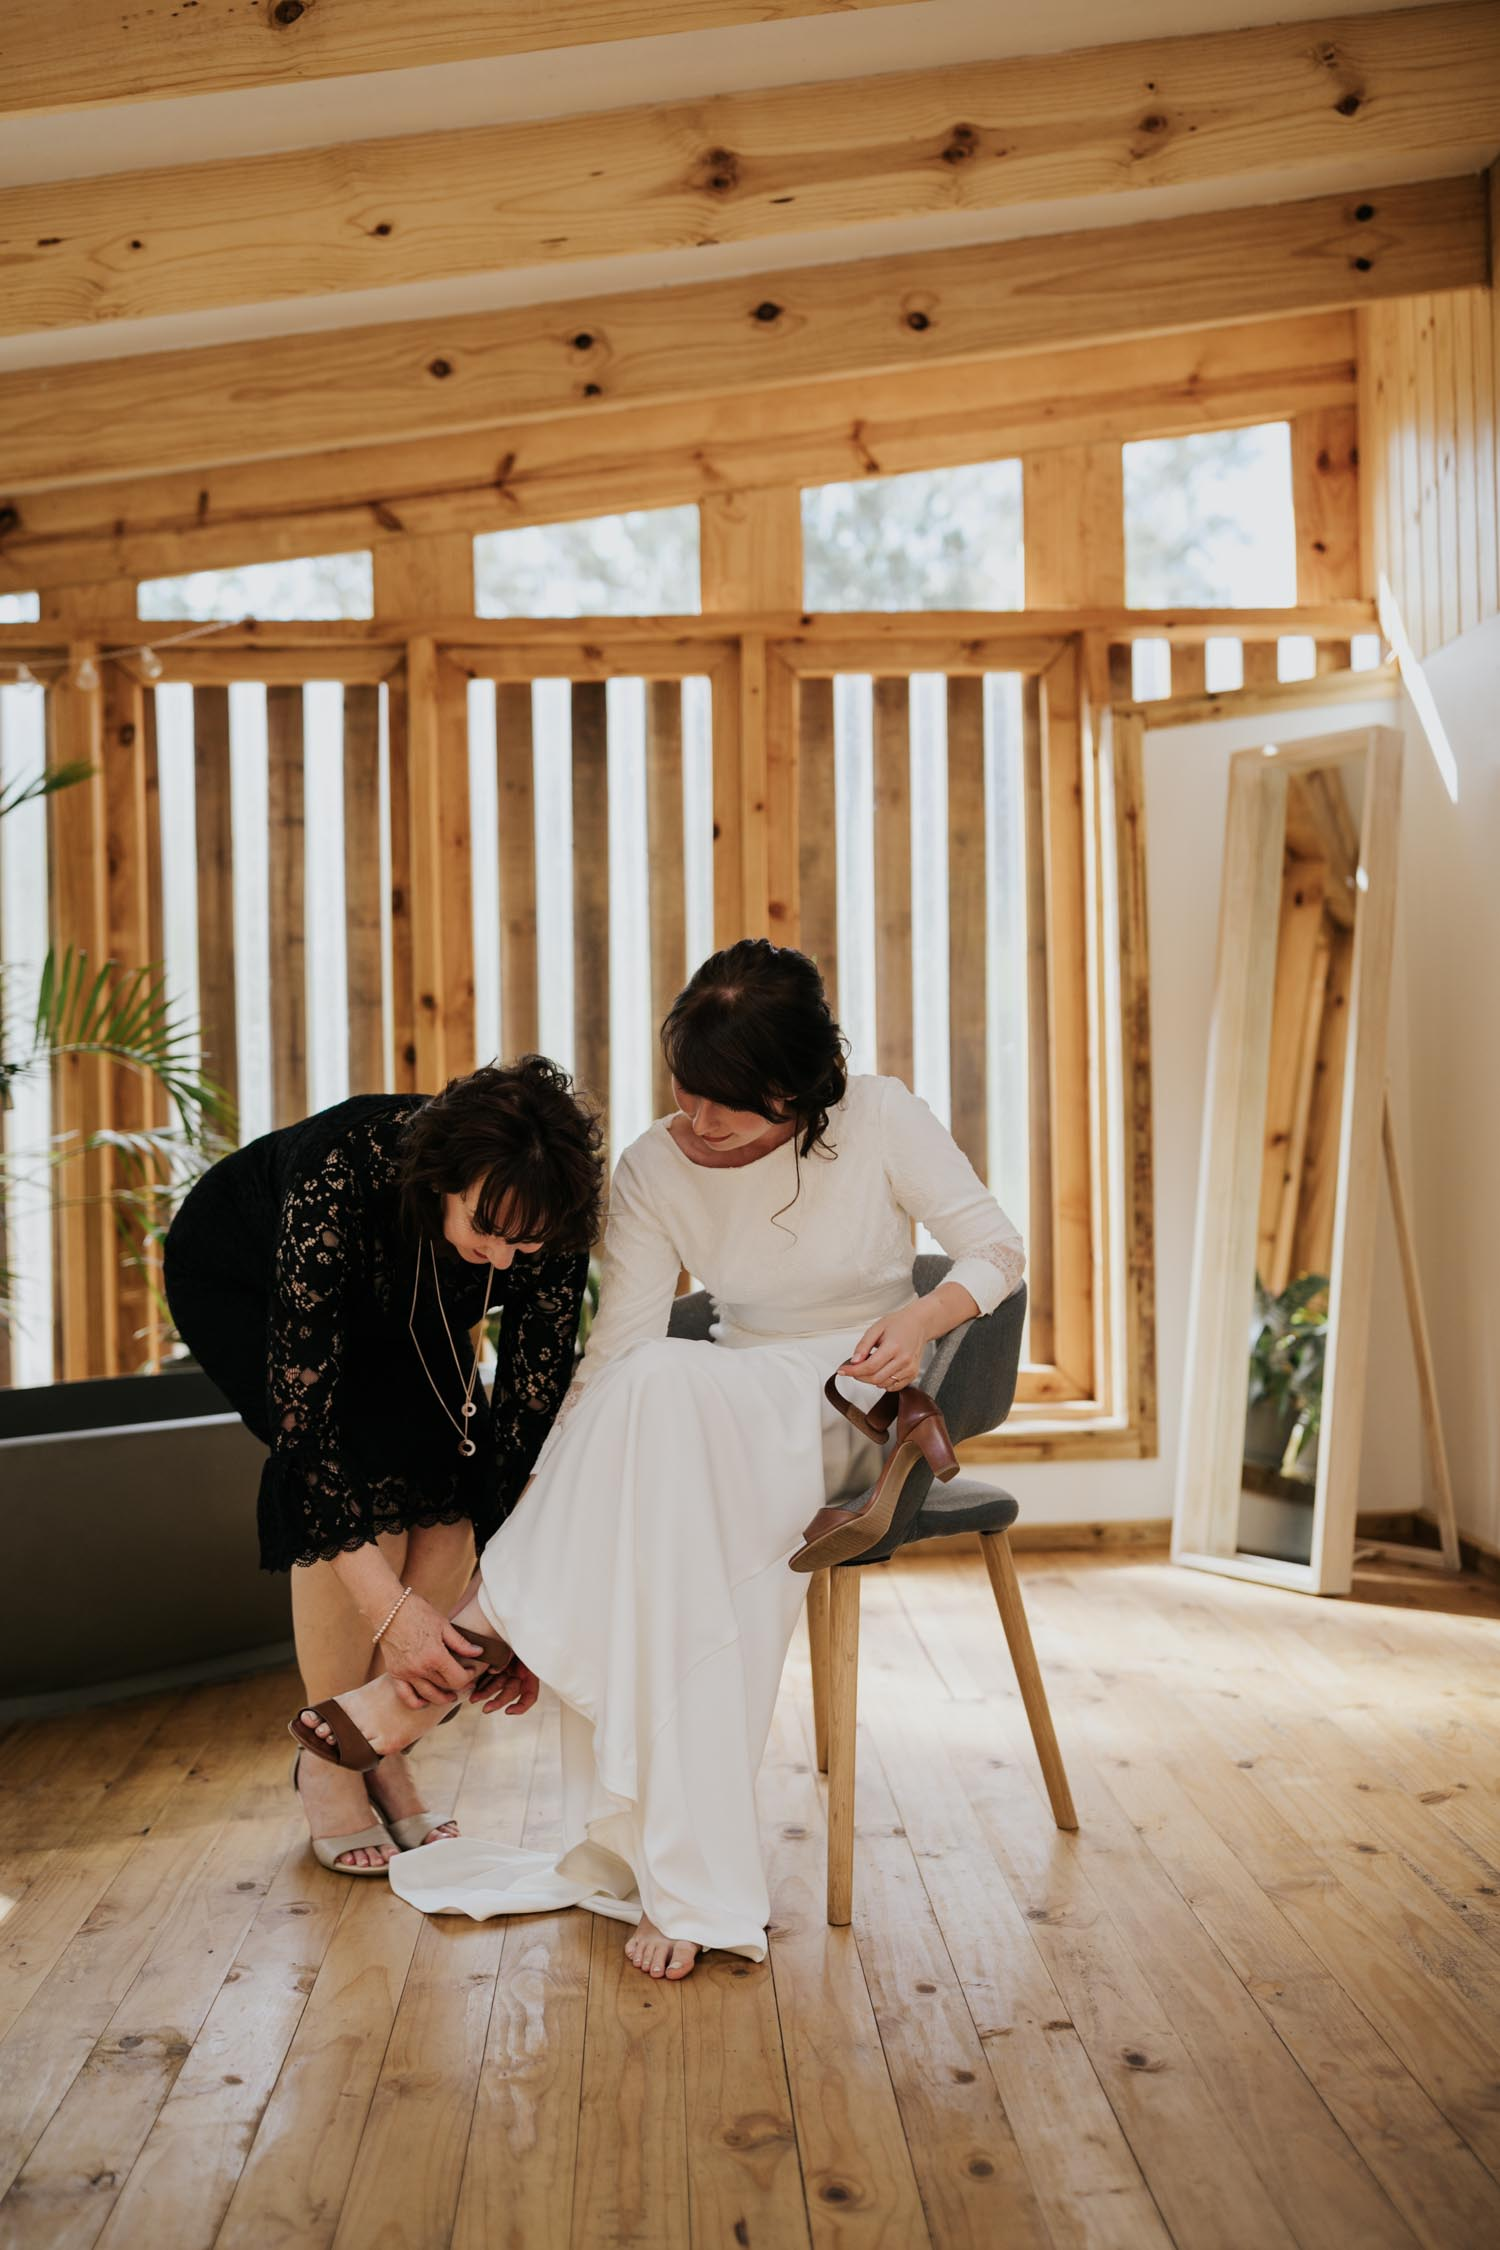 Bride's mom sits on Danish chair in Scandi loft apartment while the mother of the bride puts on her leather shoes